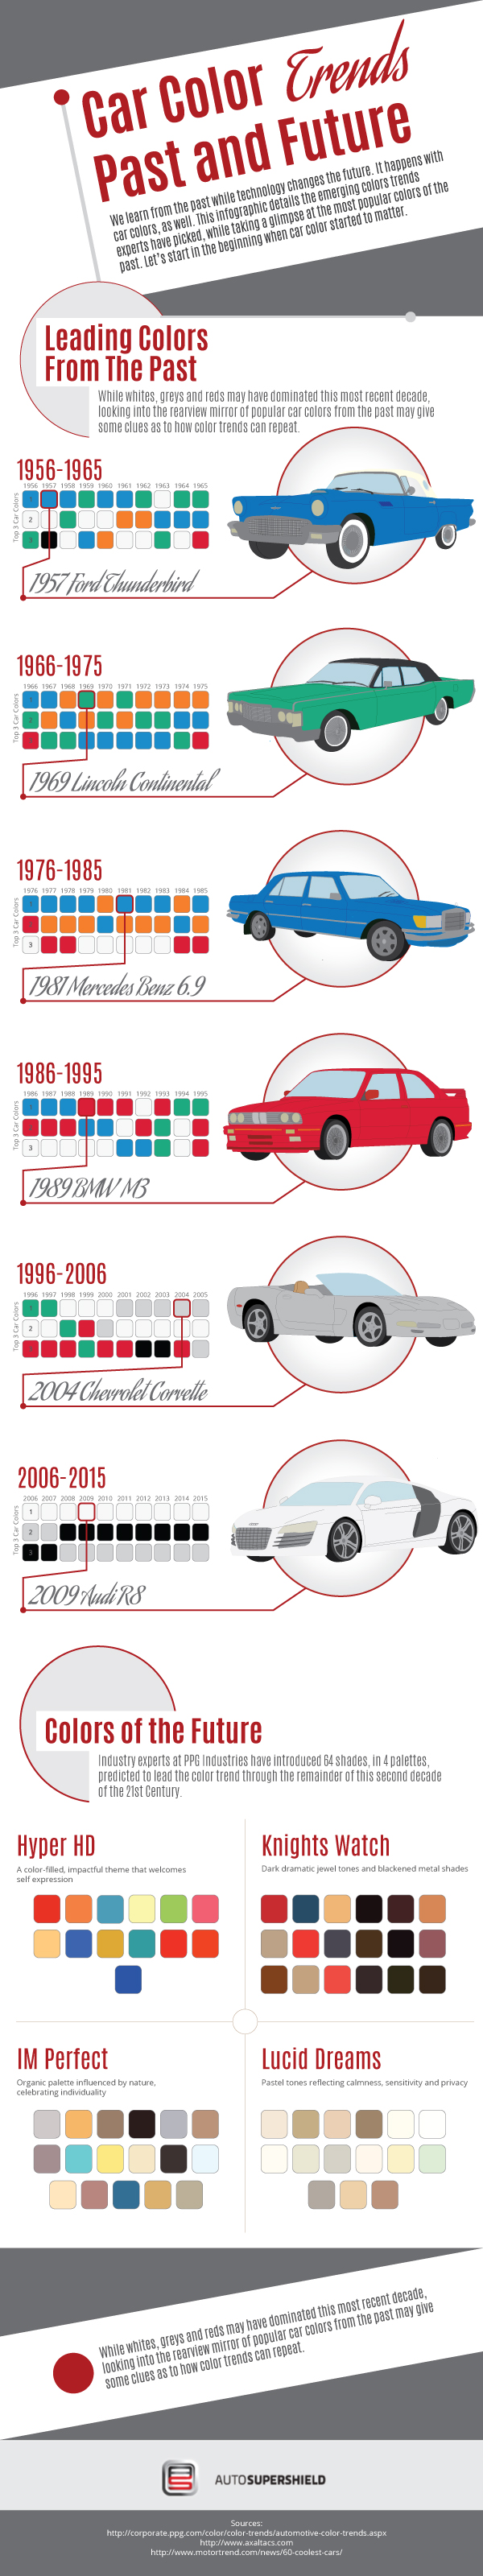 Car-Color-Trends-of-the-Future-infographic-plaza